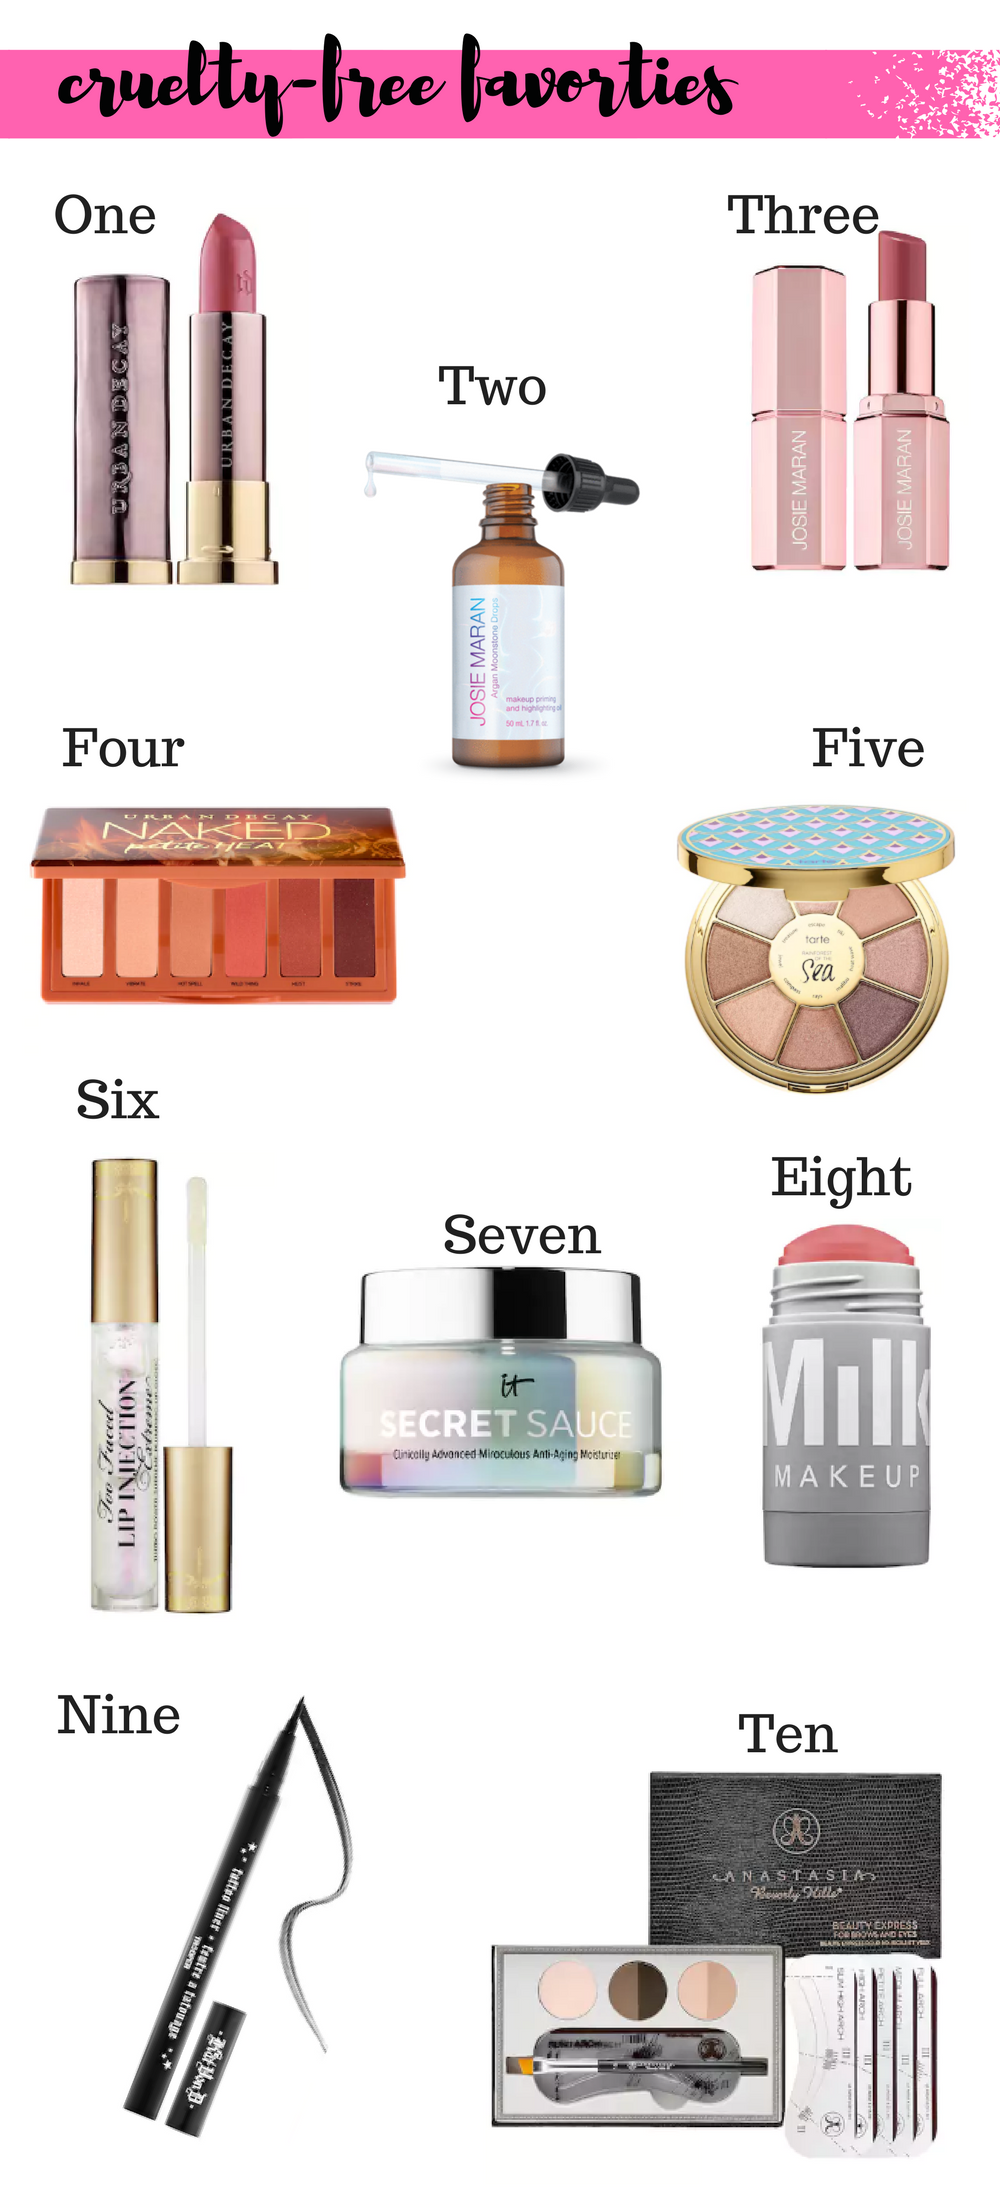 Cruelty-Free Beauty Brands on Cup of Charisma